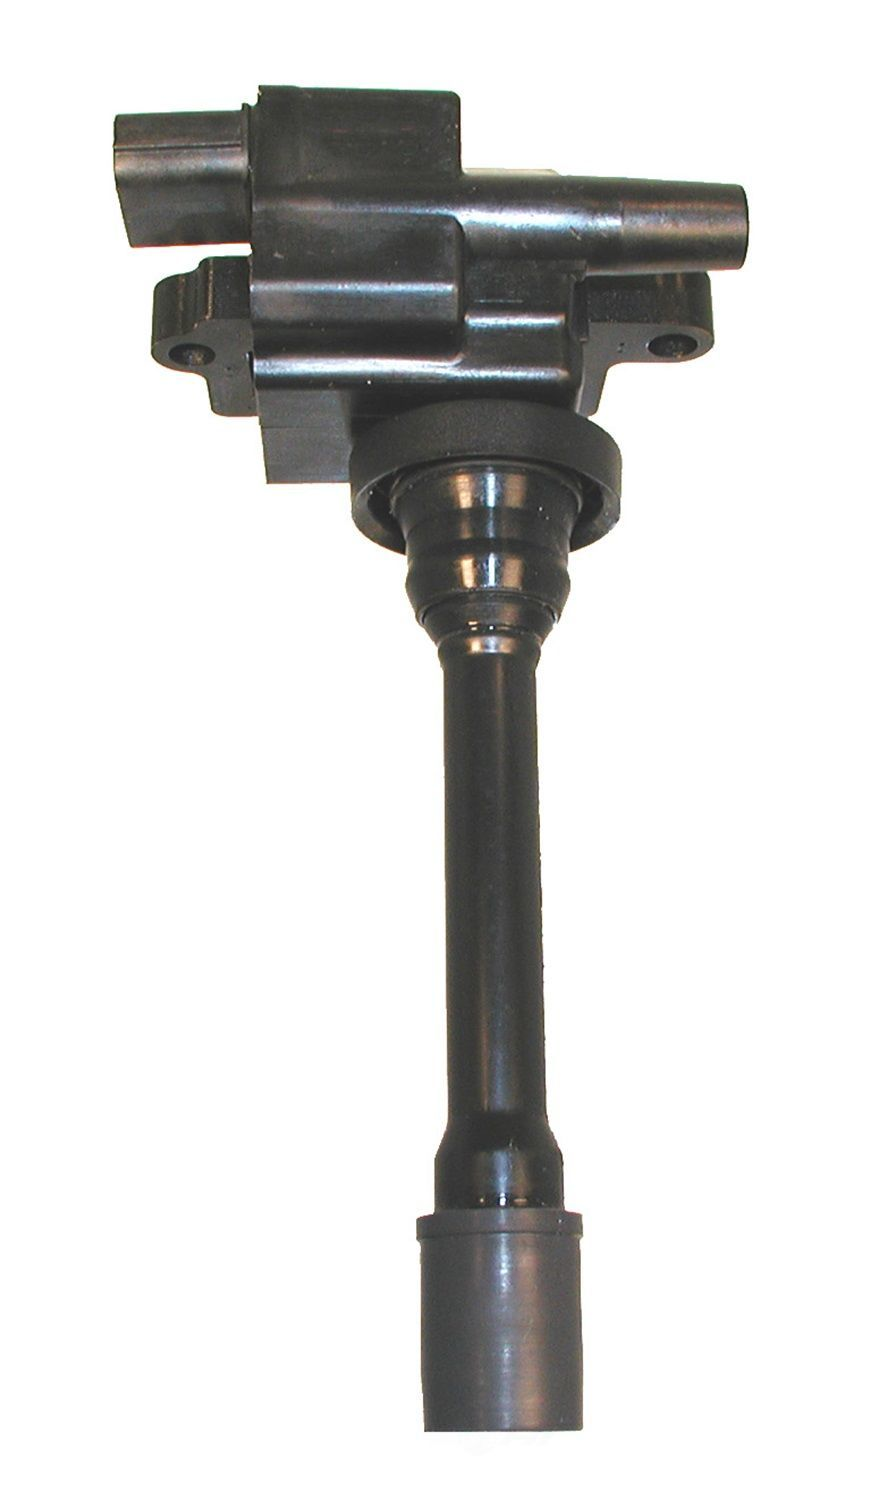 KARLYN/STI - Karlyn-STI Direct Ignition Coil Unit - KLY 5002